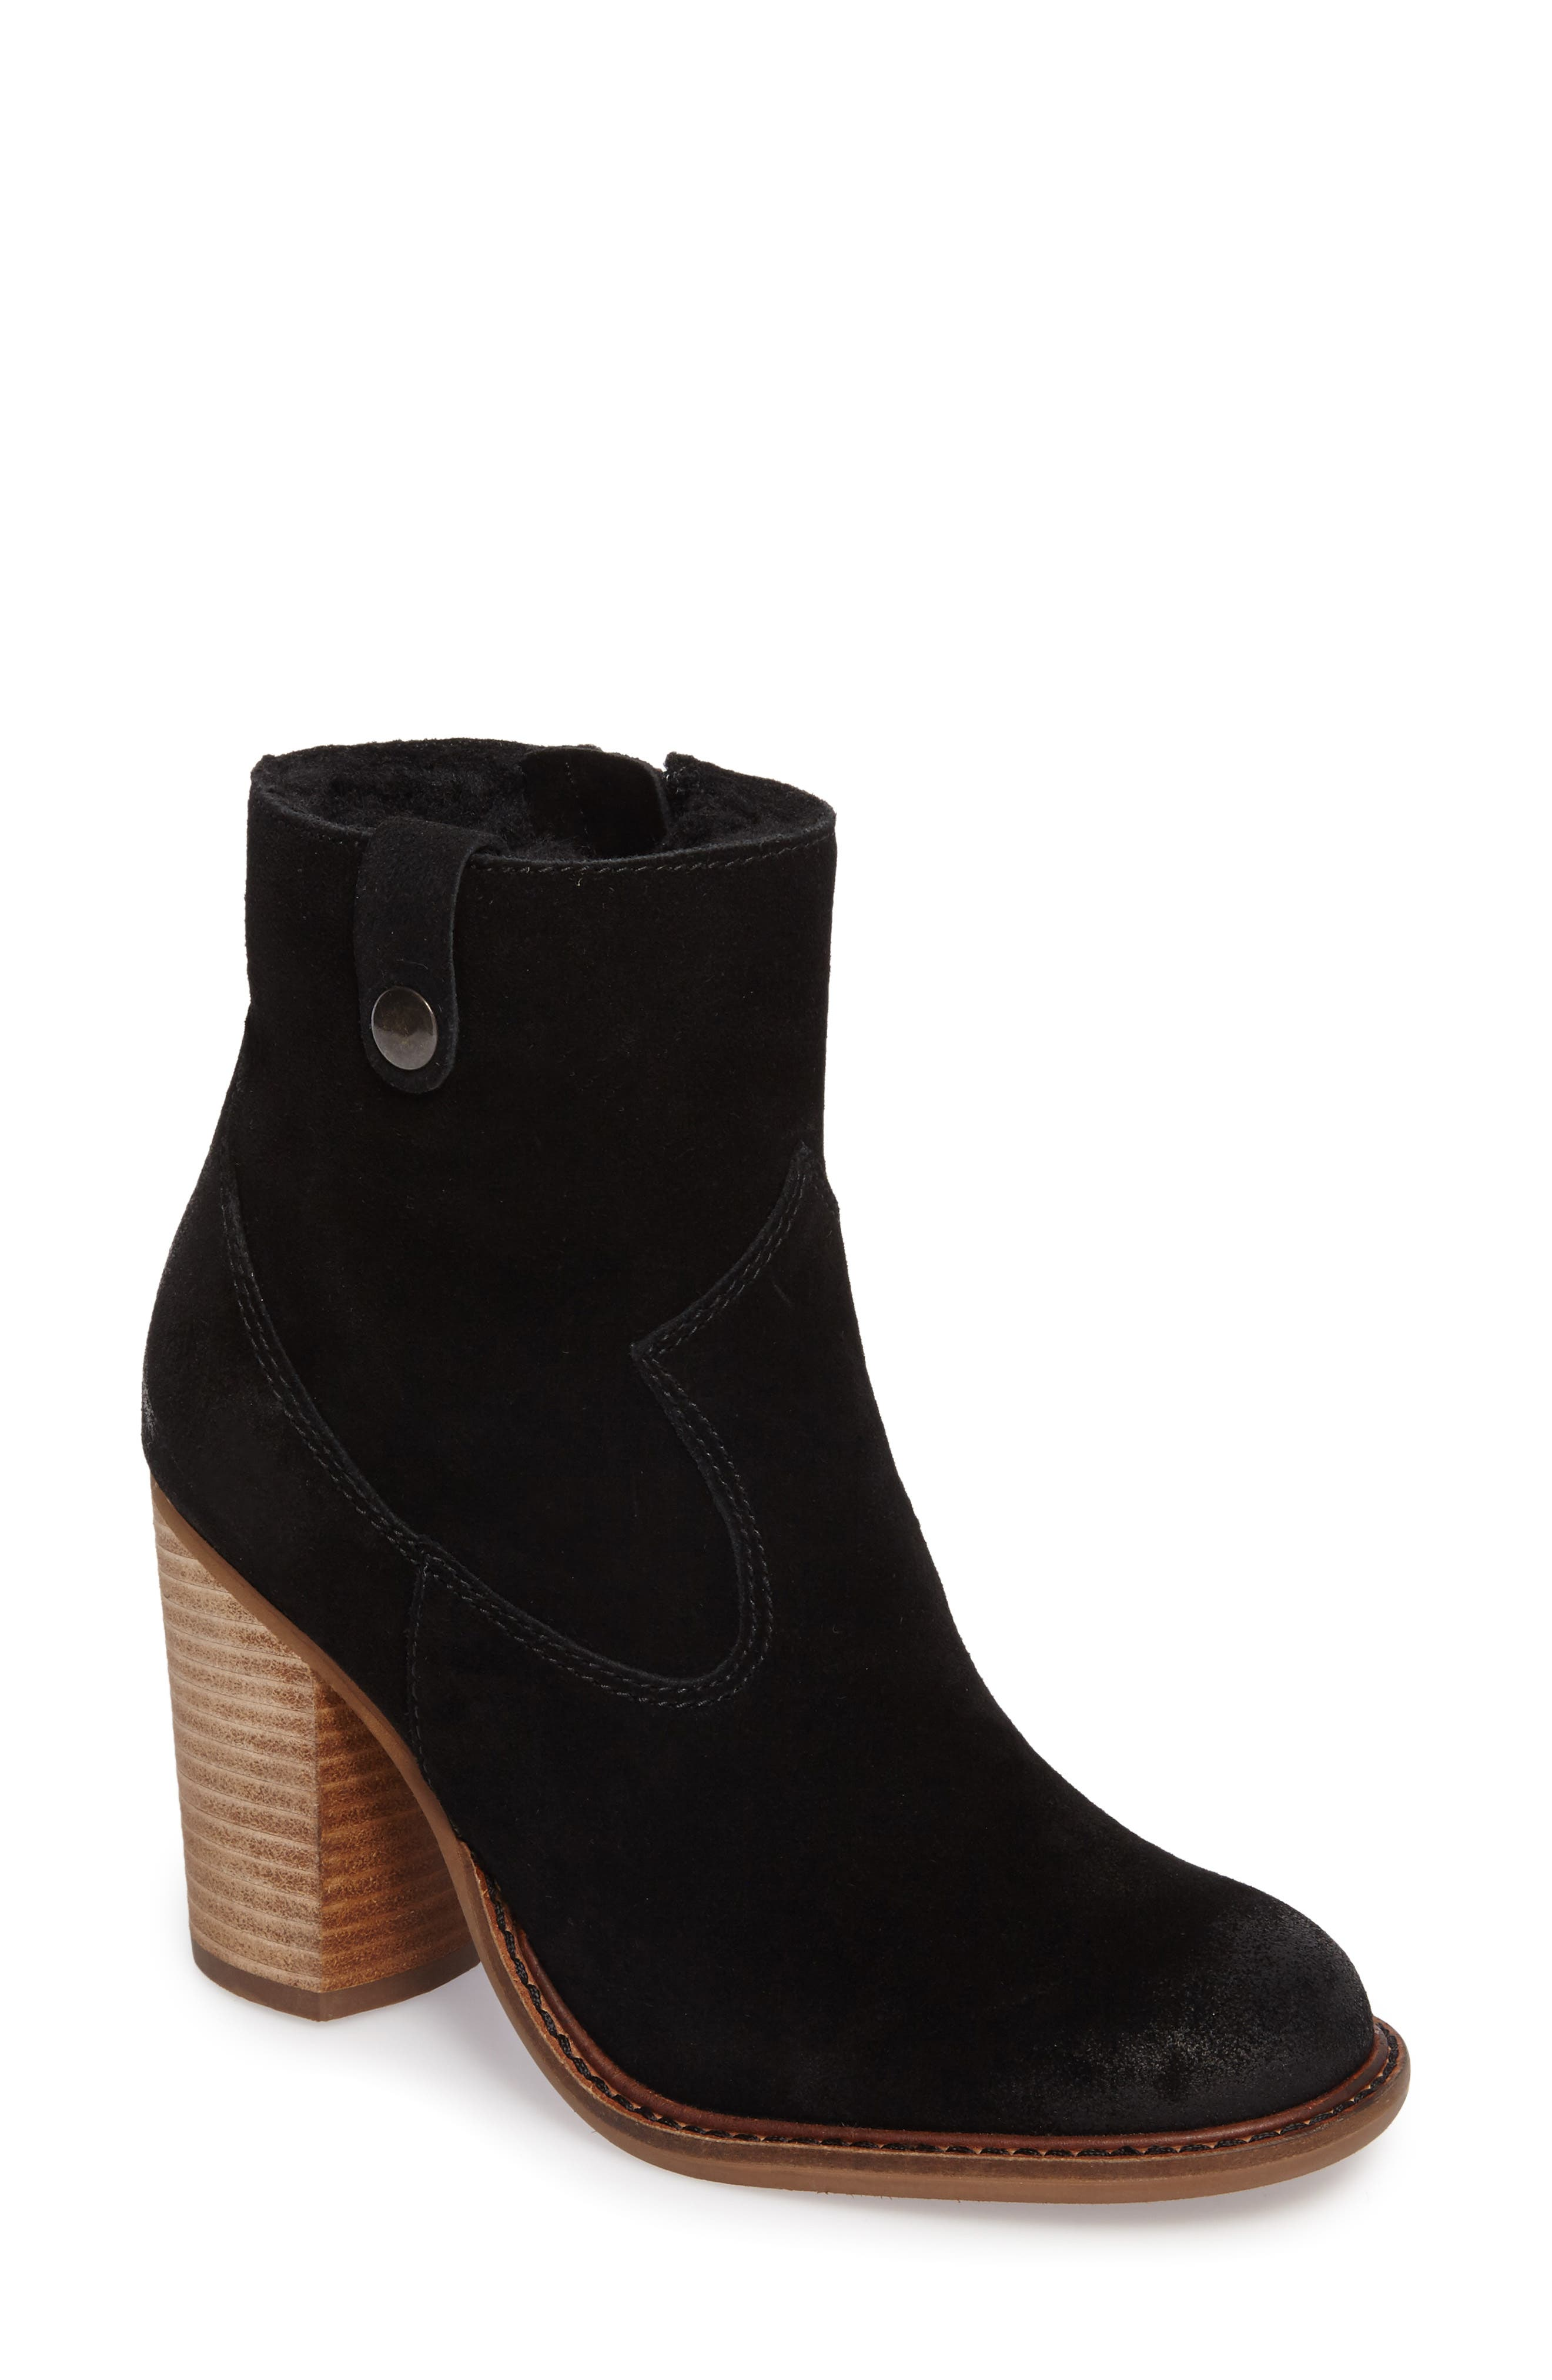 Legion Bootie with Faux Shearling Lining,                             Main thumbnail 1, color,                             Black